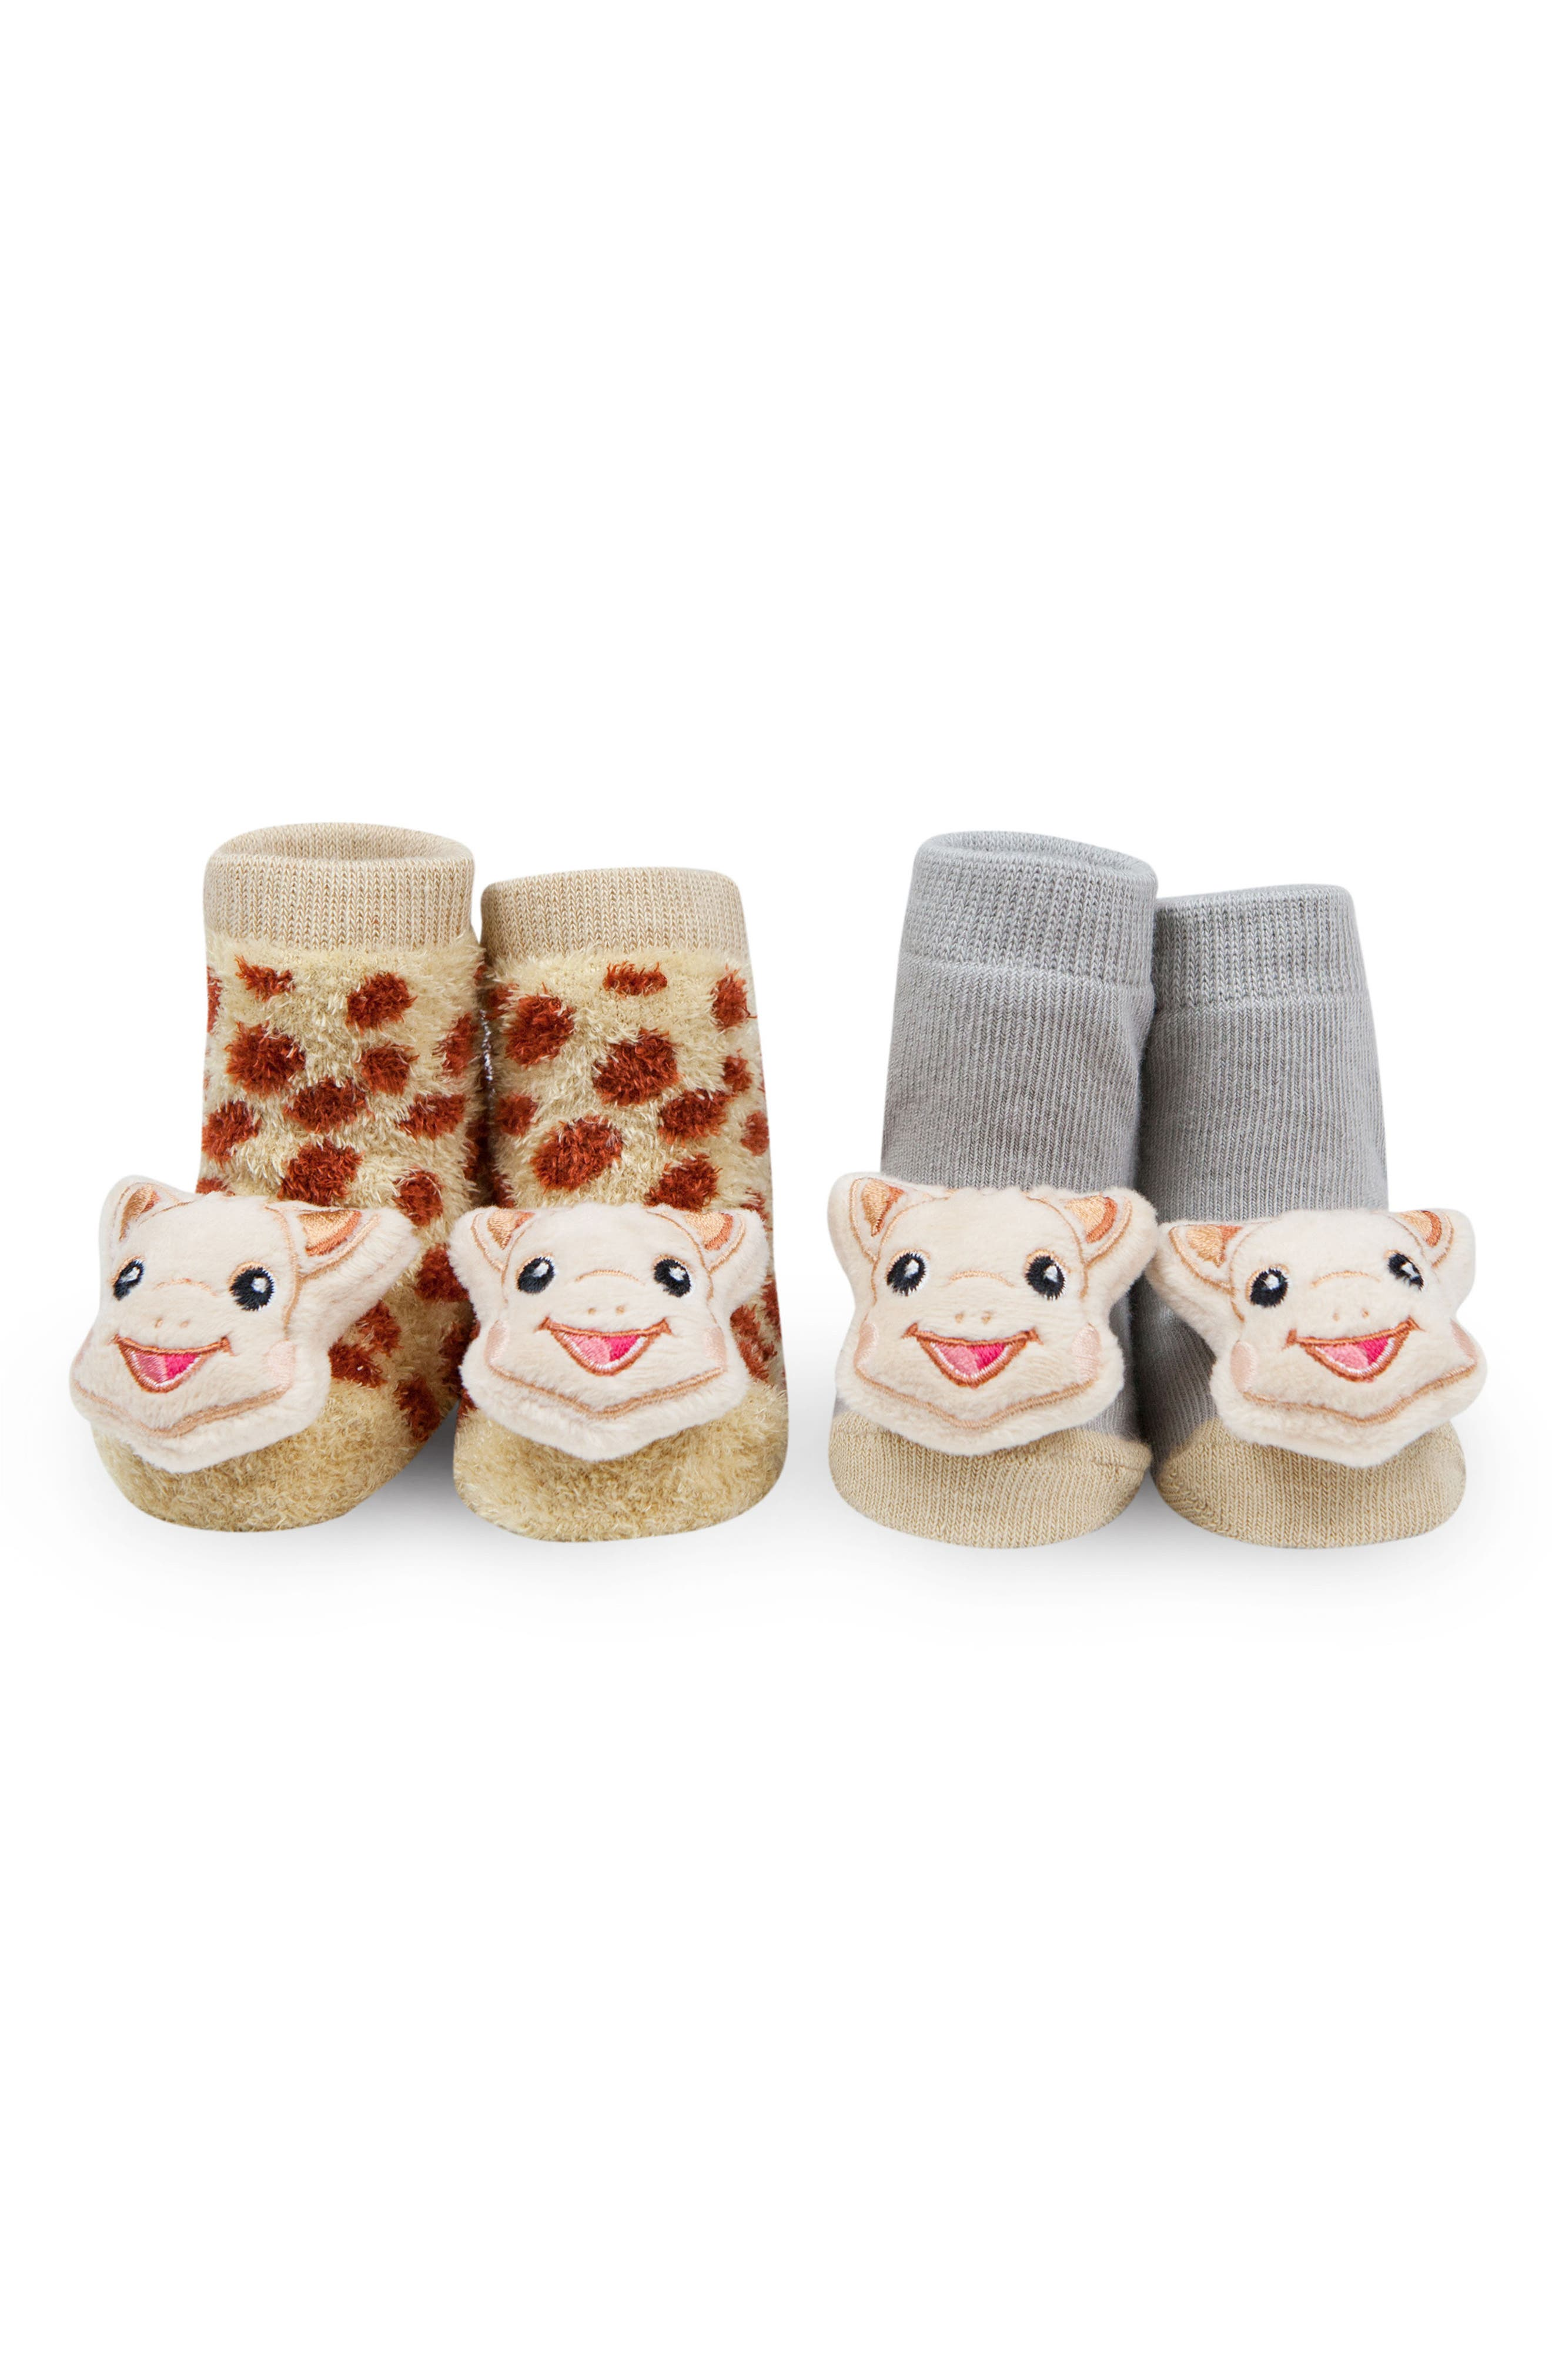 WADDLE x Sophie la Girafe 2-Pack Rattle Socks, Main, color, BROWN/ GREY